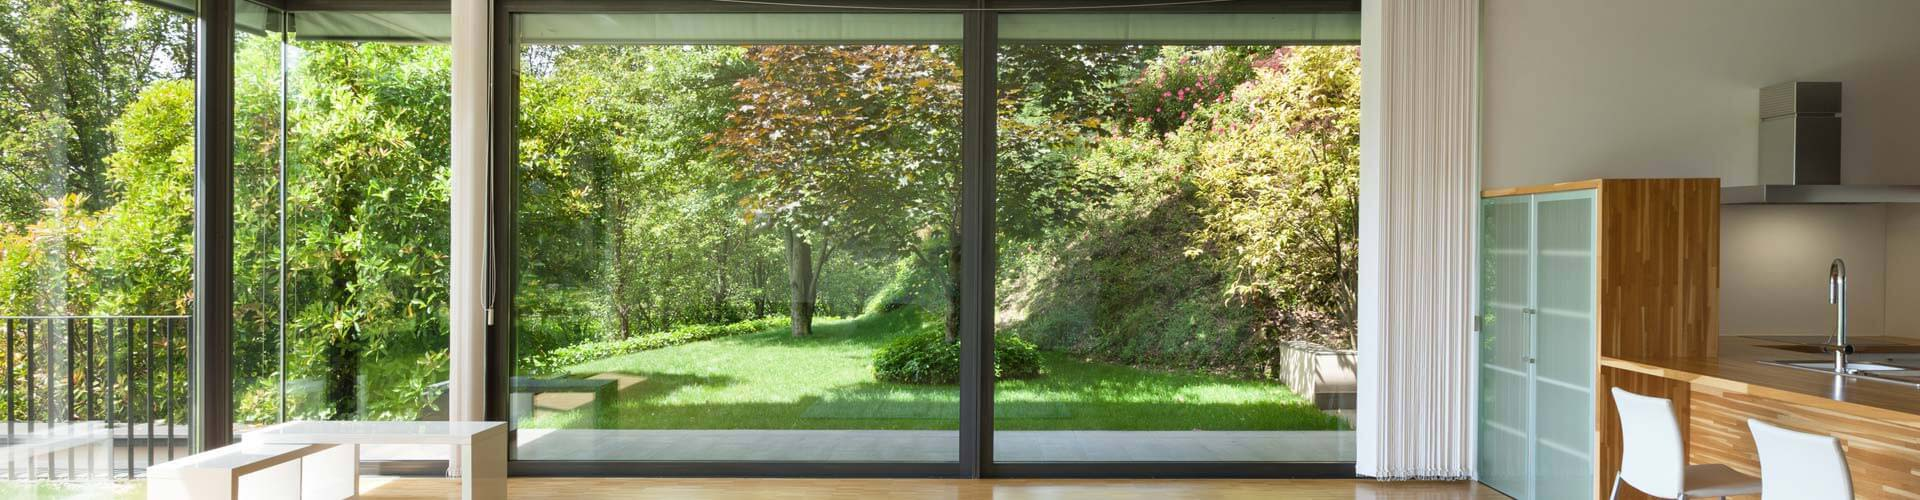 Windows suitable for your home